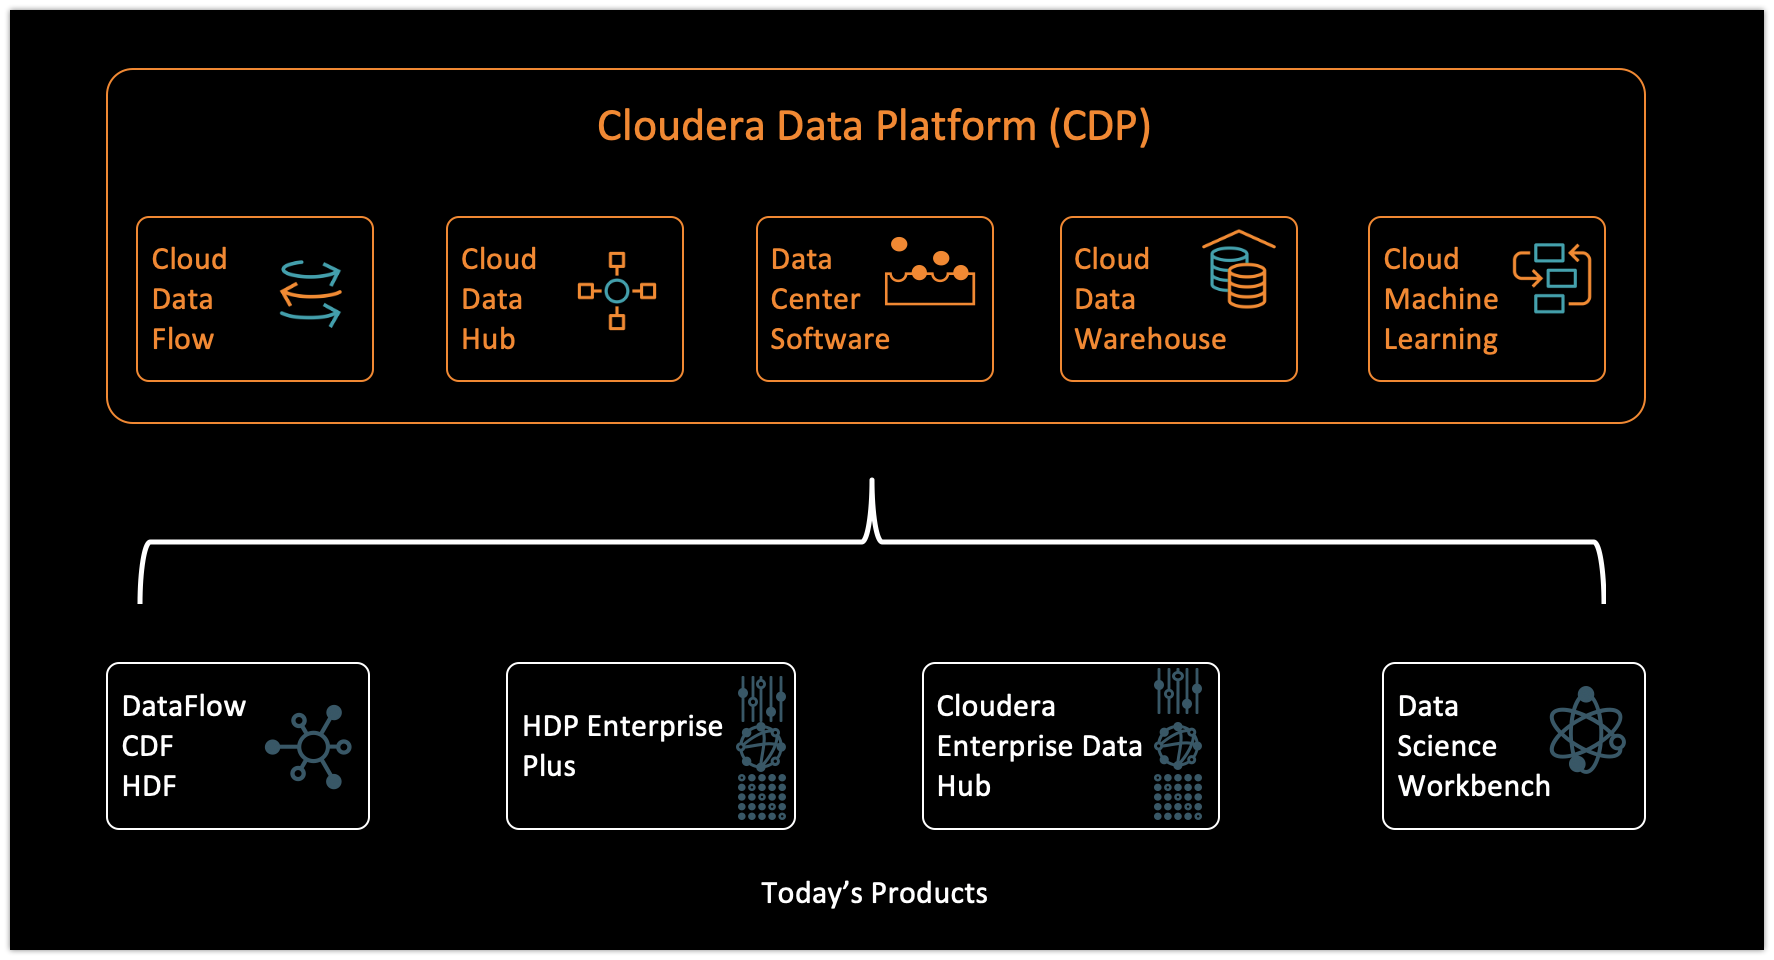 Progression for Cloudera products